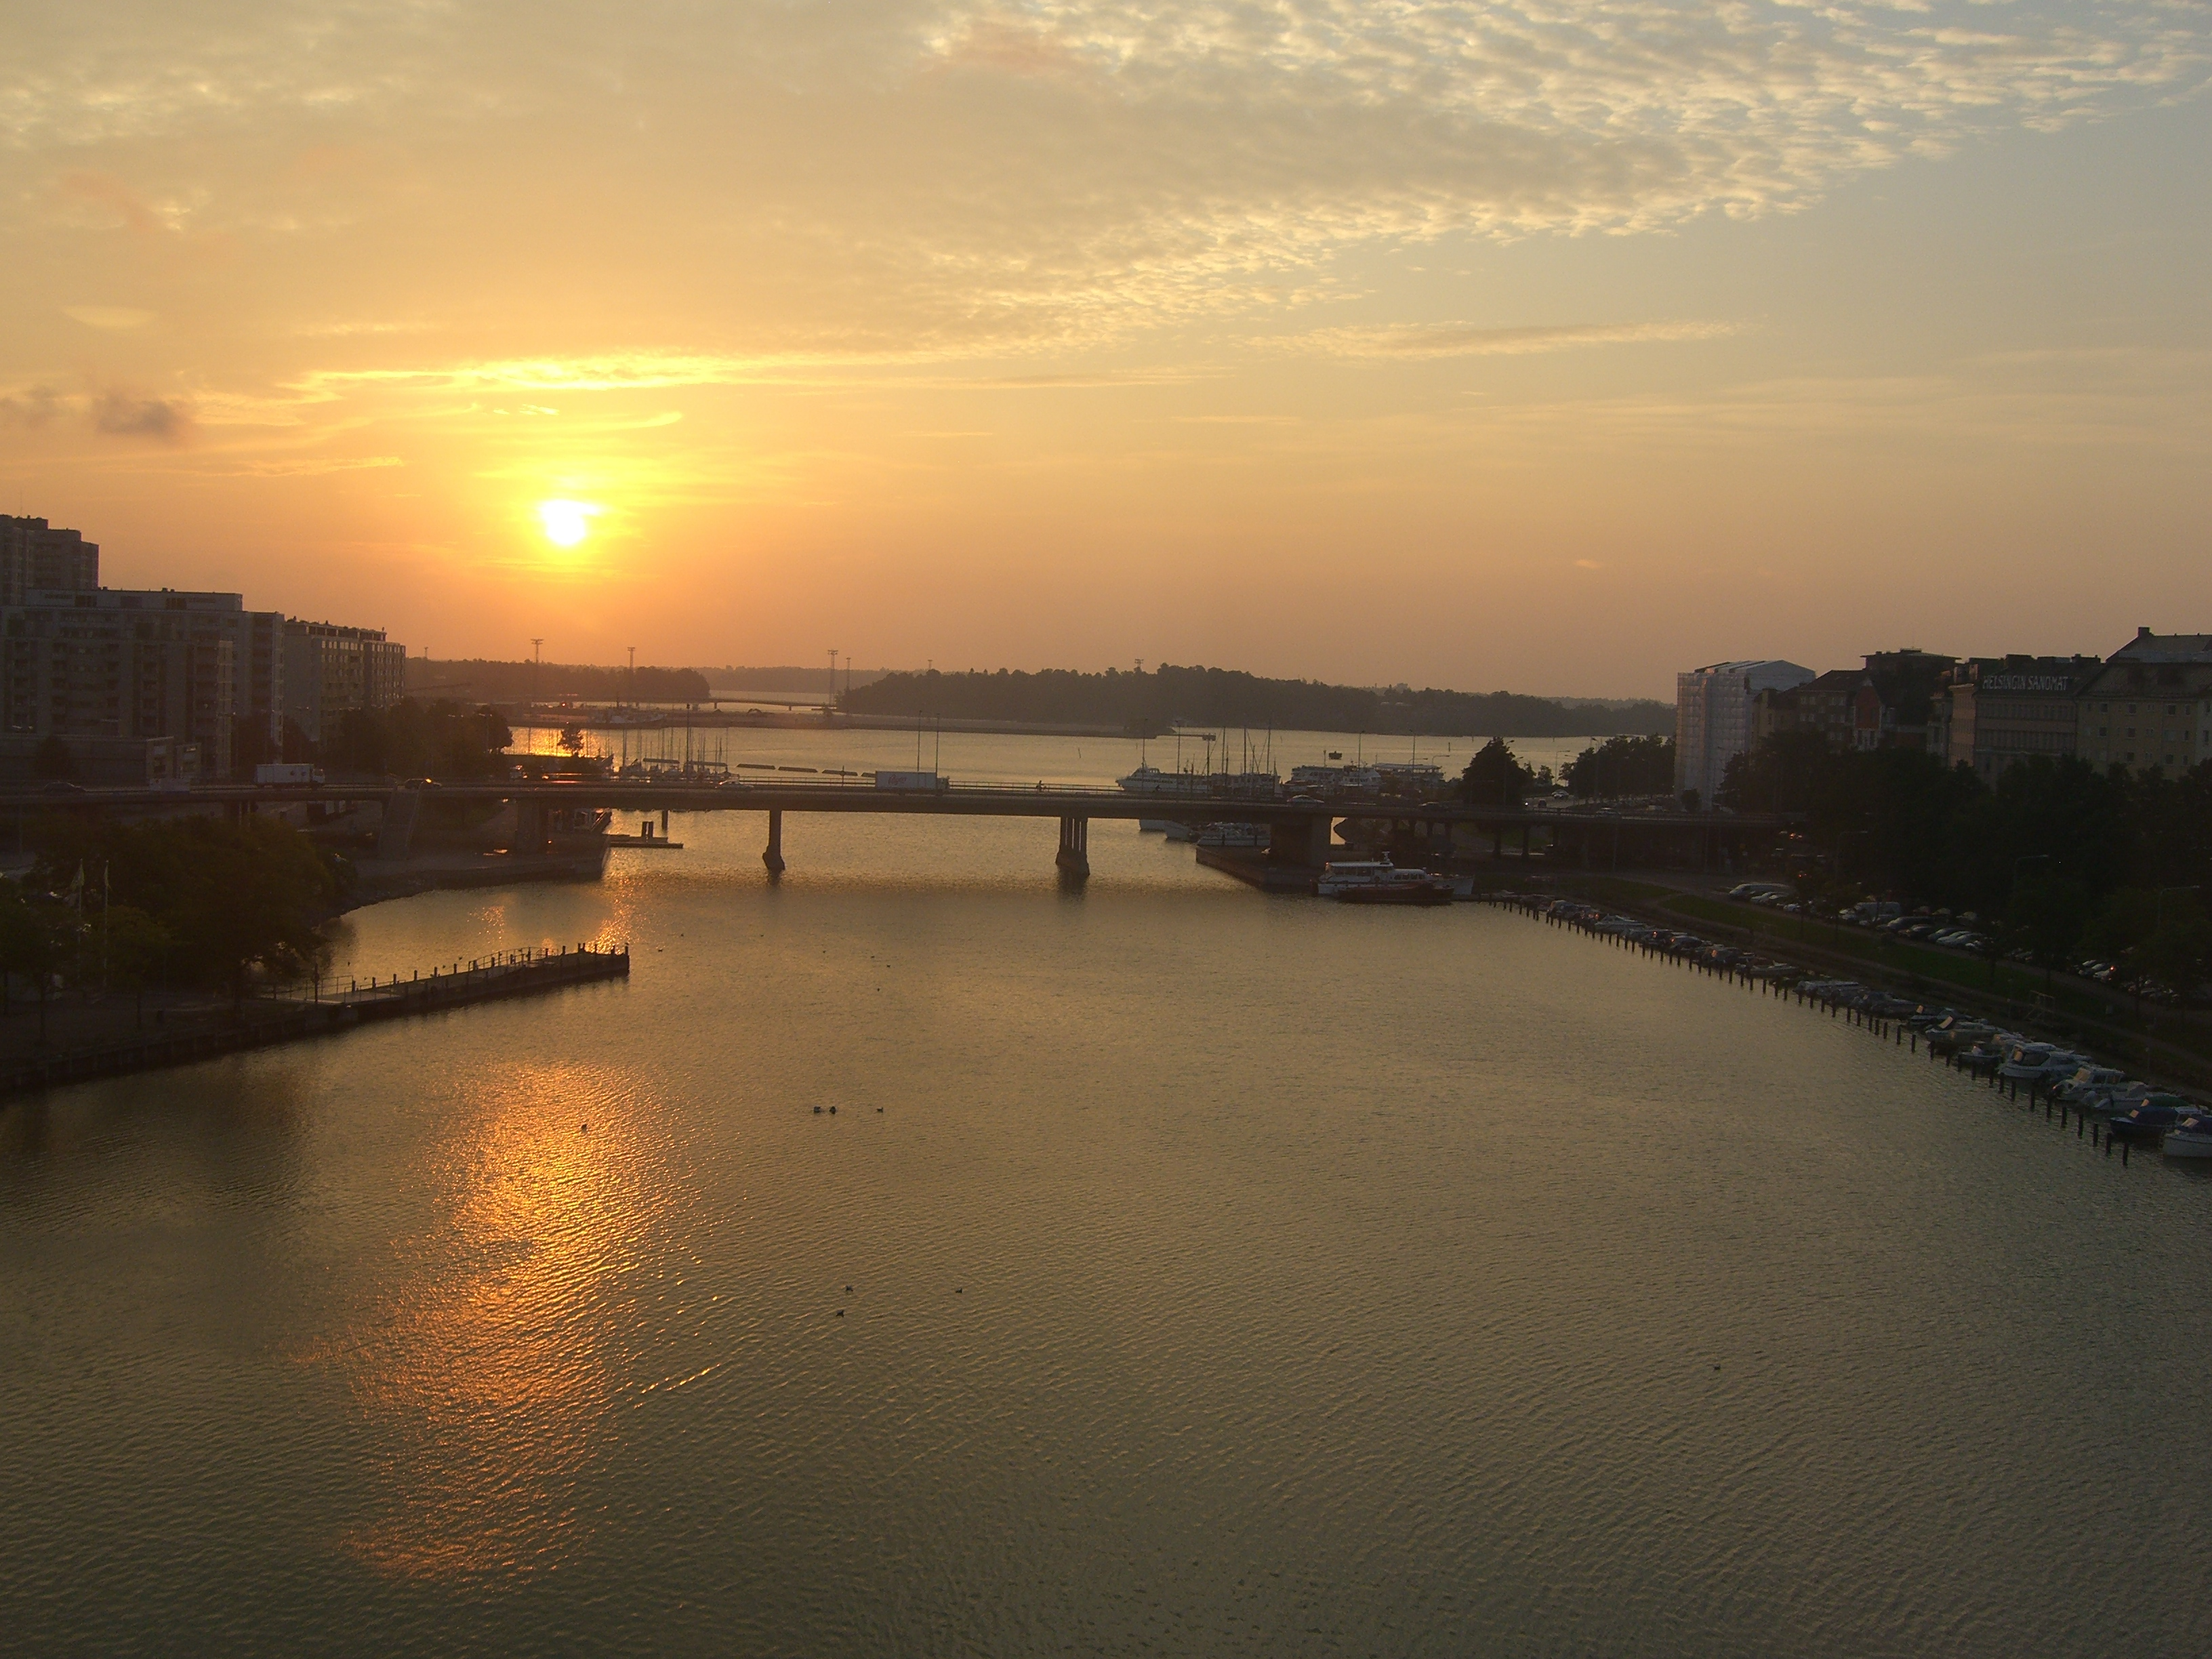 sunrise on the Baltic river